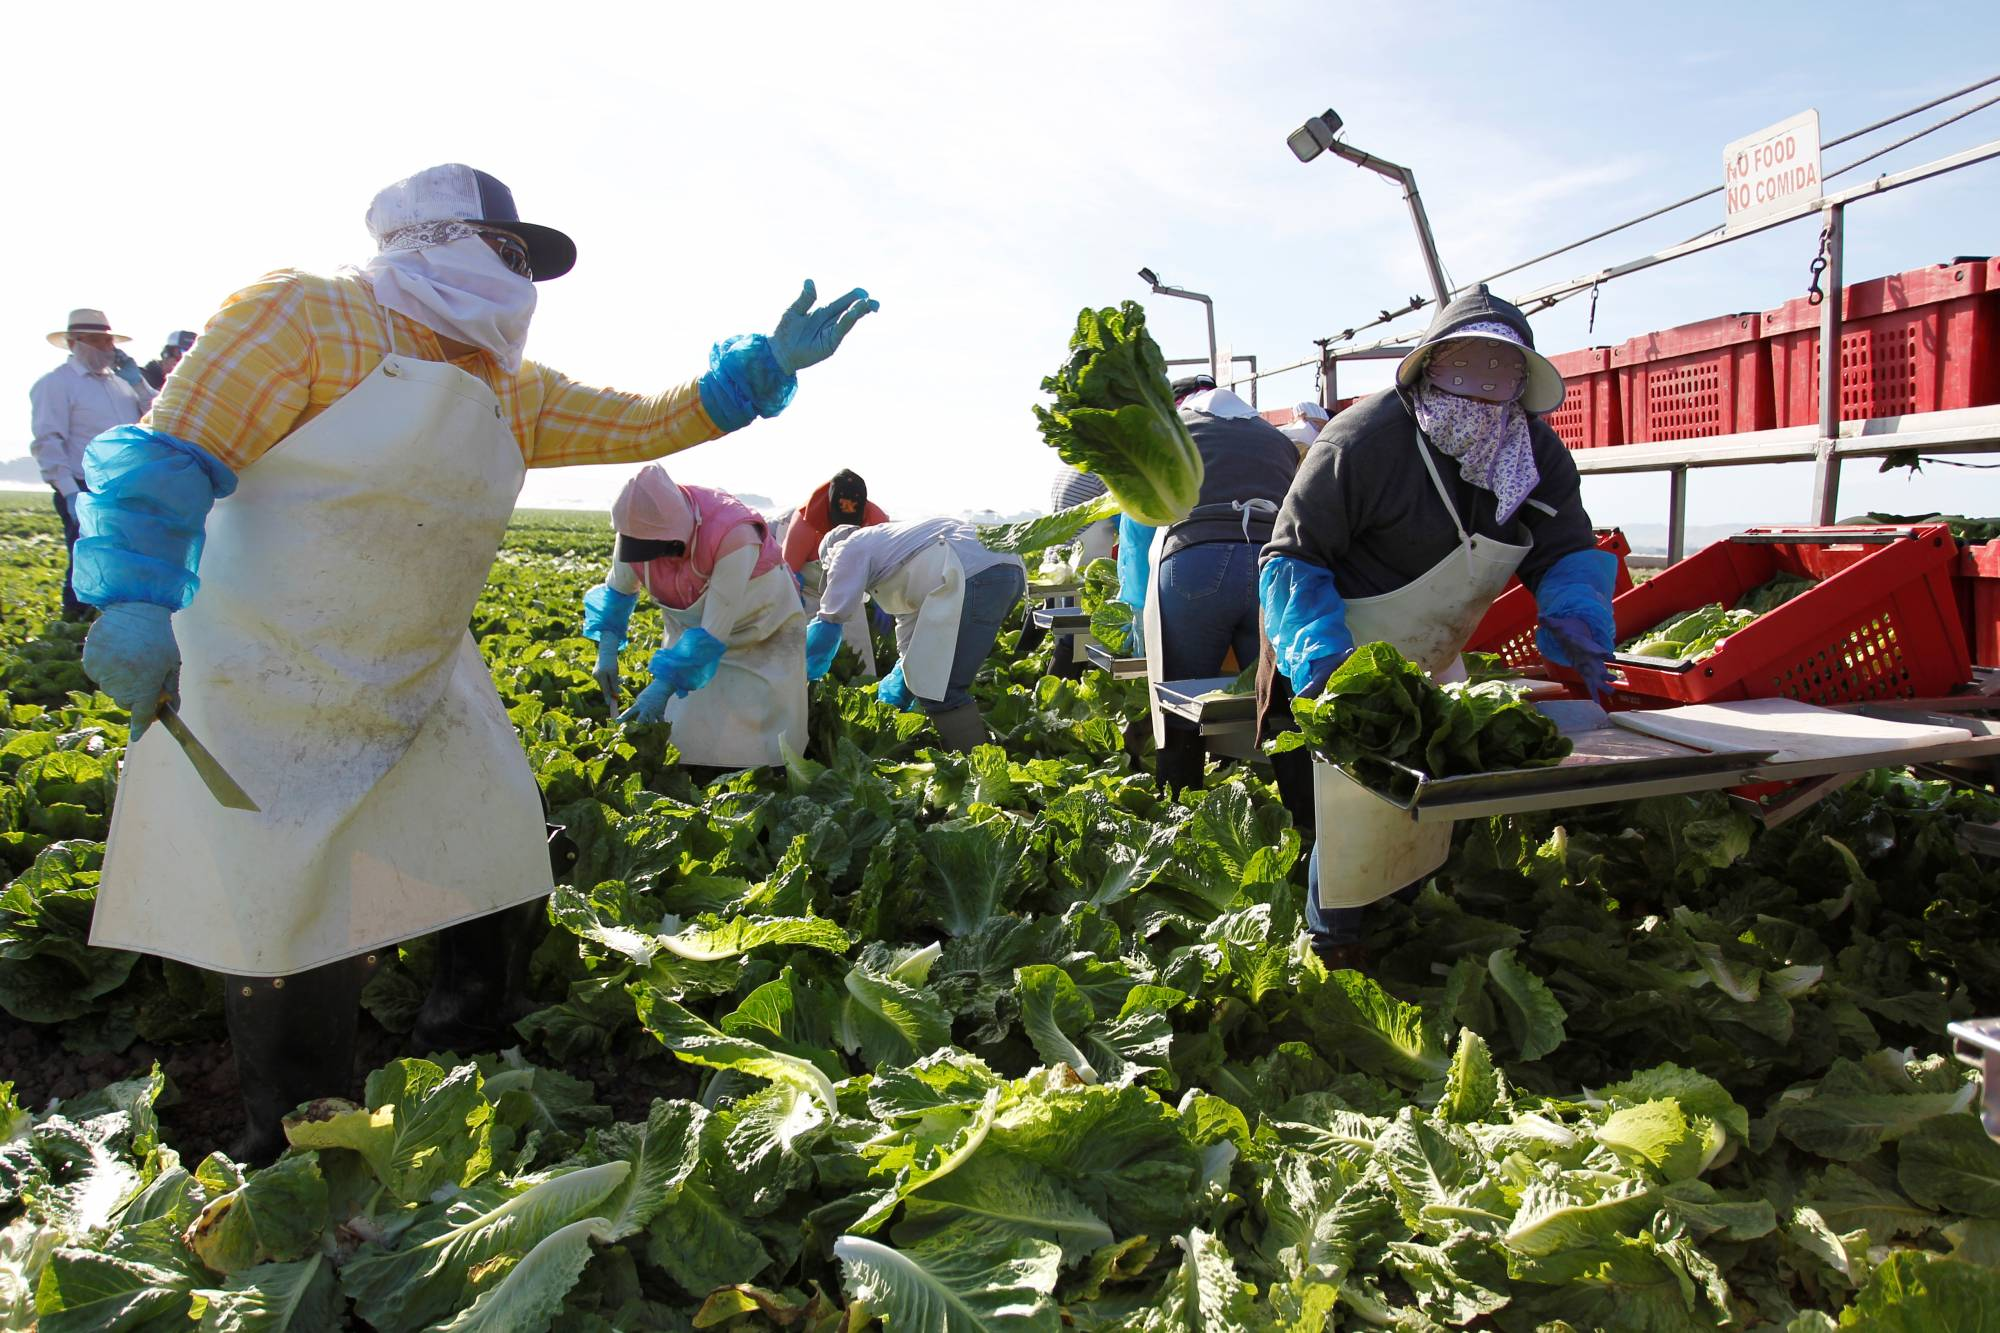 A crew harvests romaine lettuce by hand near Soledad